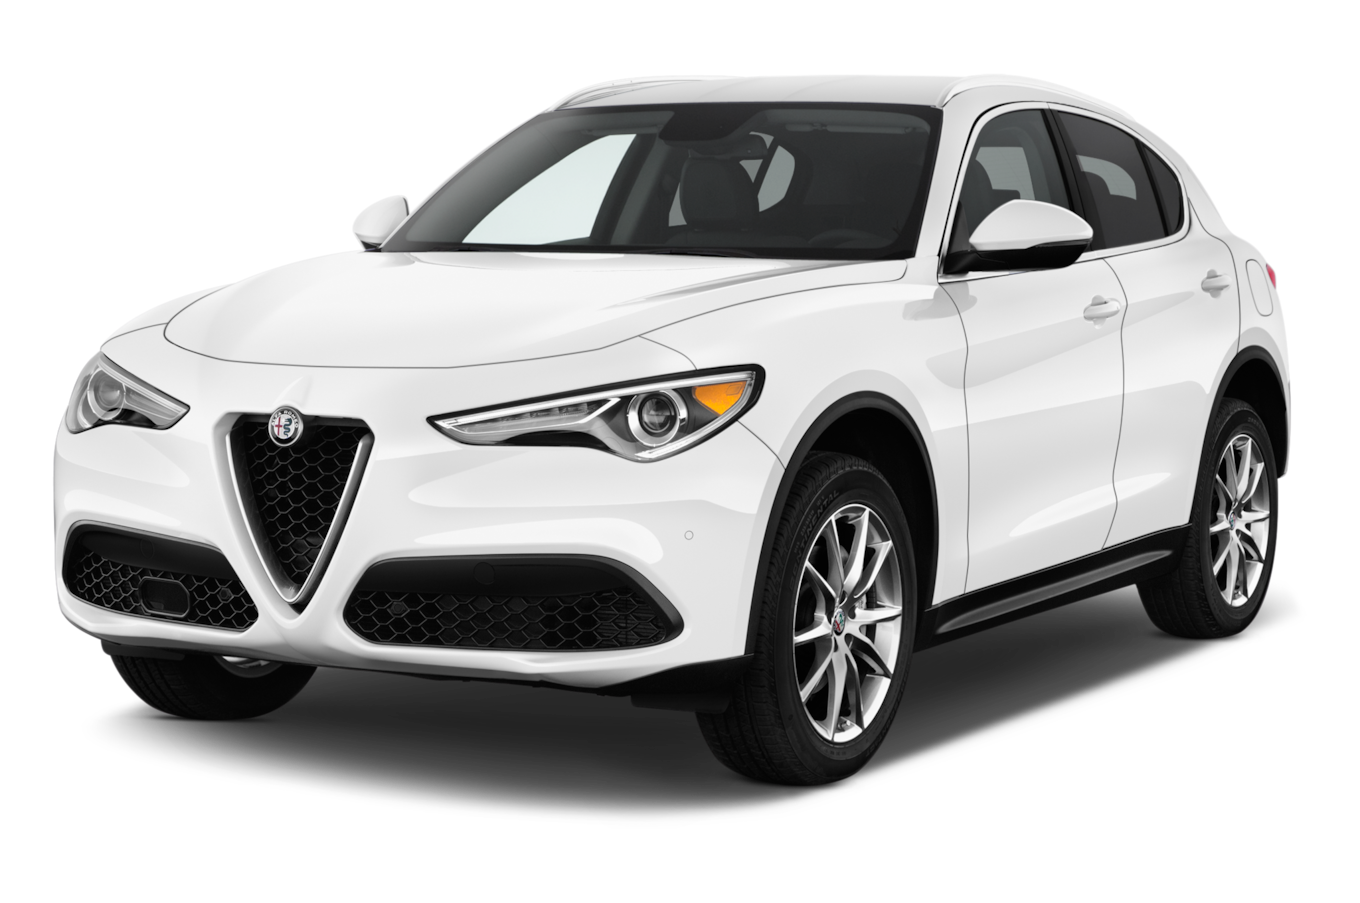 Alfa Romeo Stelvio White Suv Car Transparent 26752